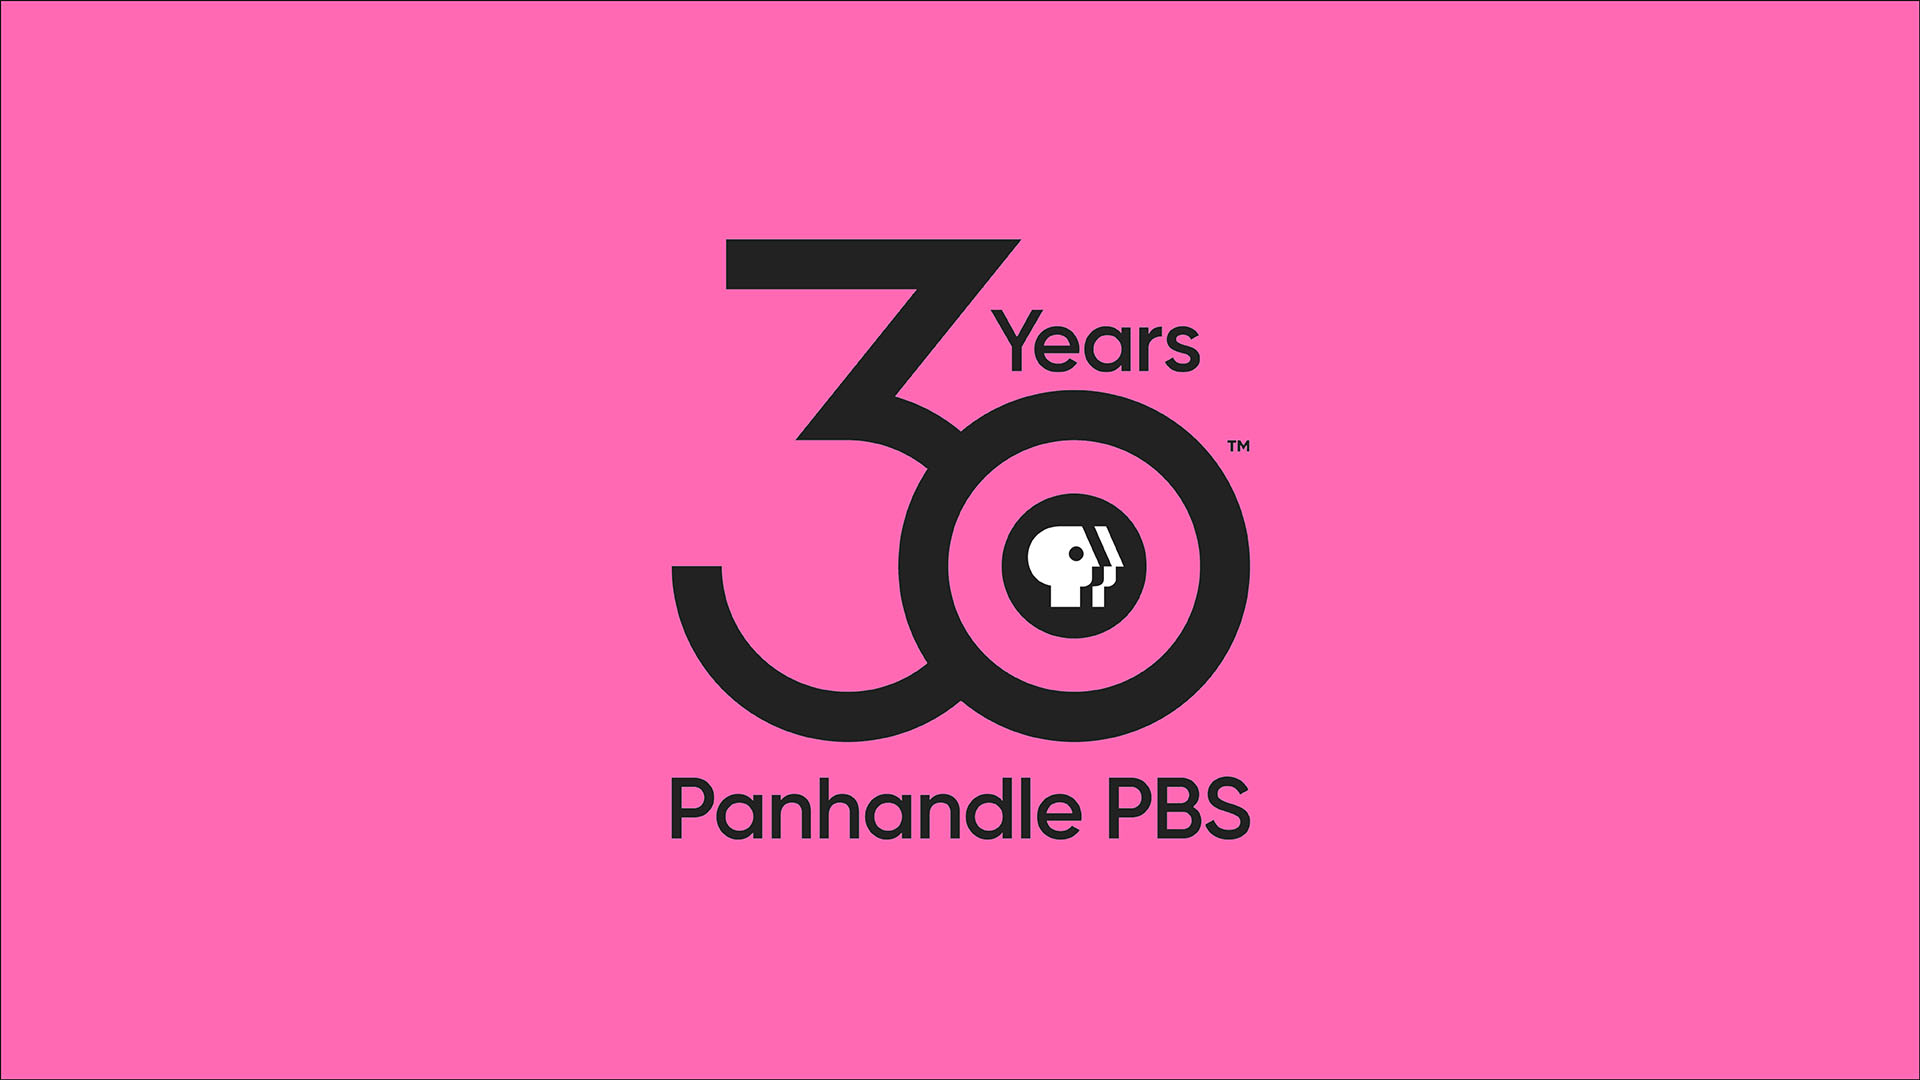 Jump footloose for Panhandle PBS' 30th anniversary